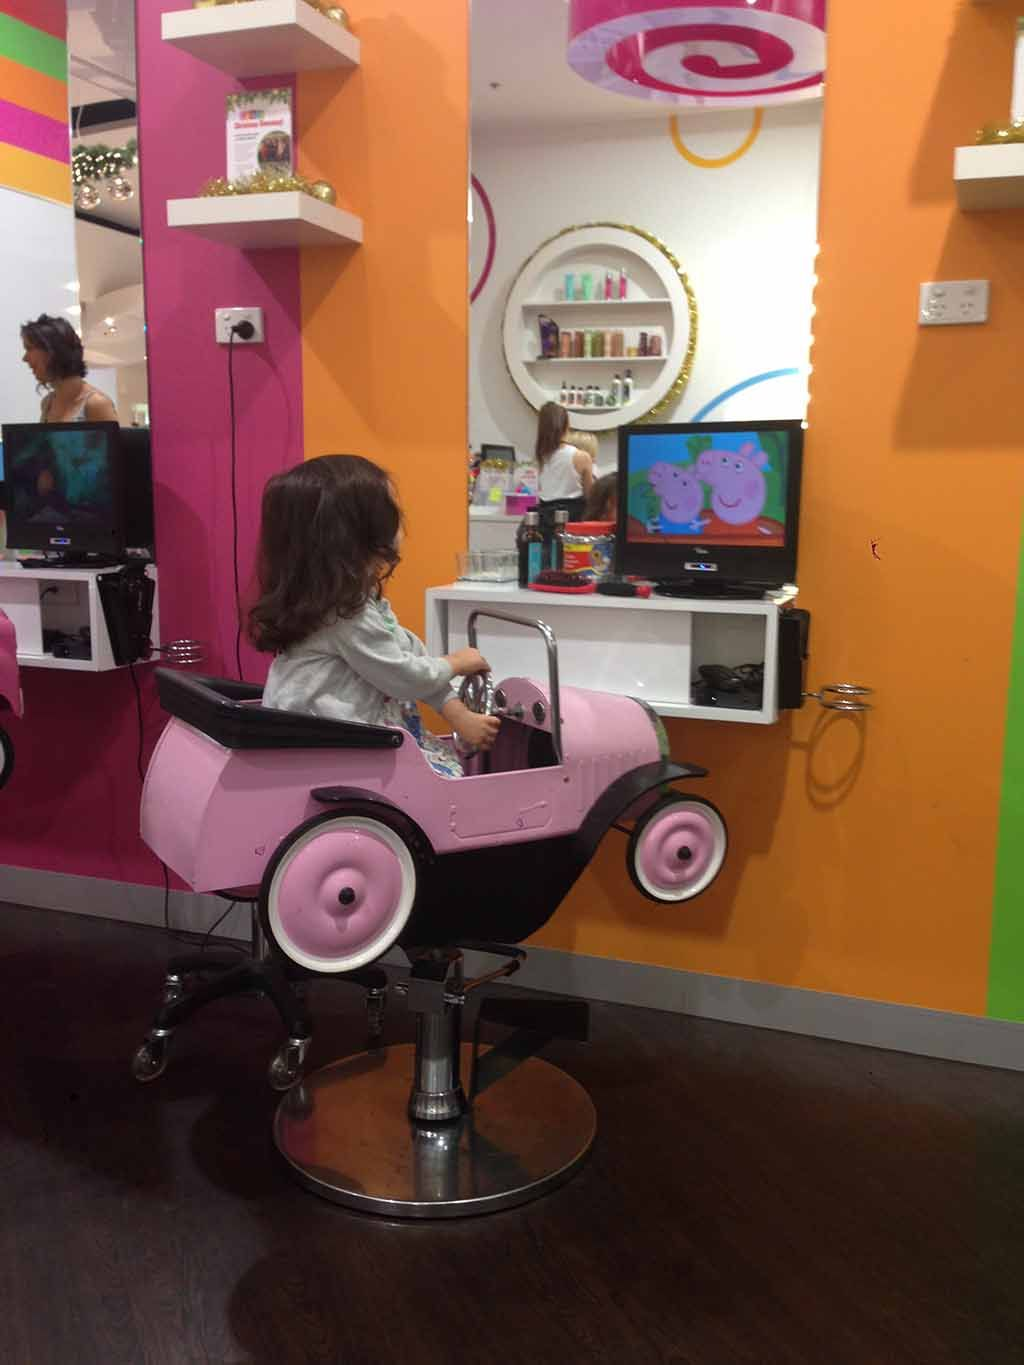 Melbourne Candy Hair Is A Child Centric Hairdressing Salon And